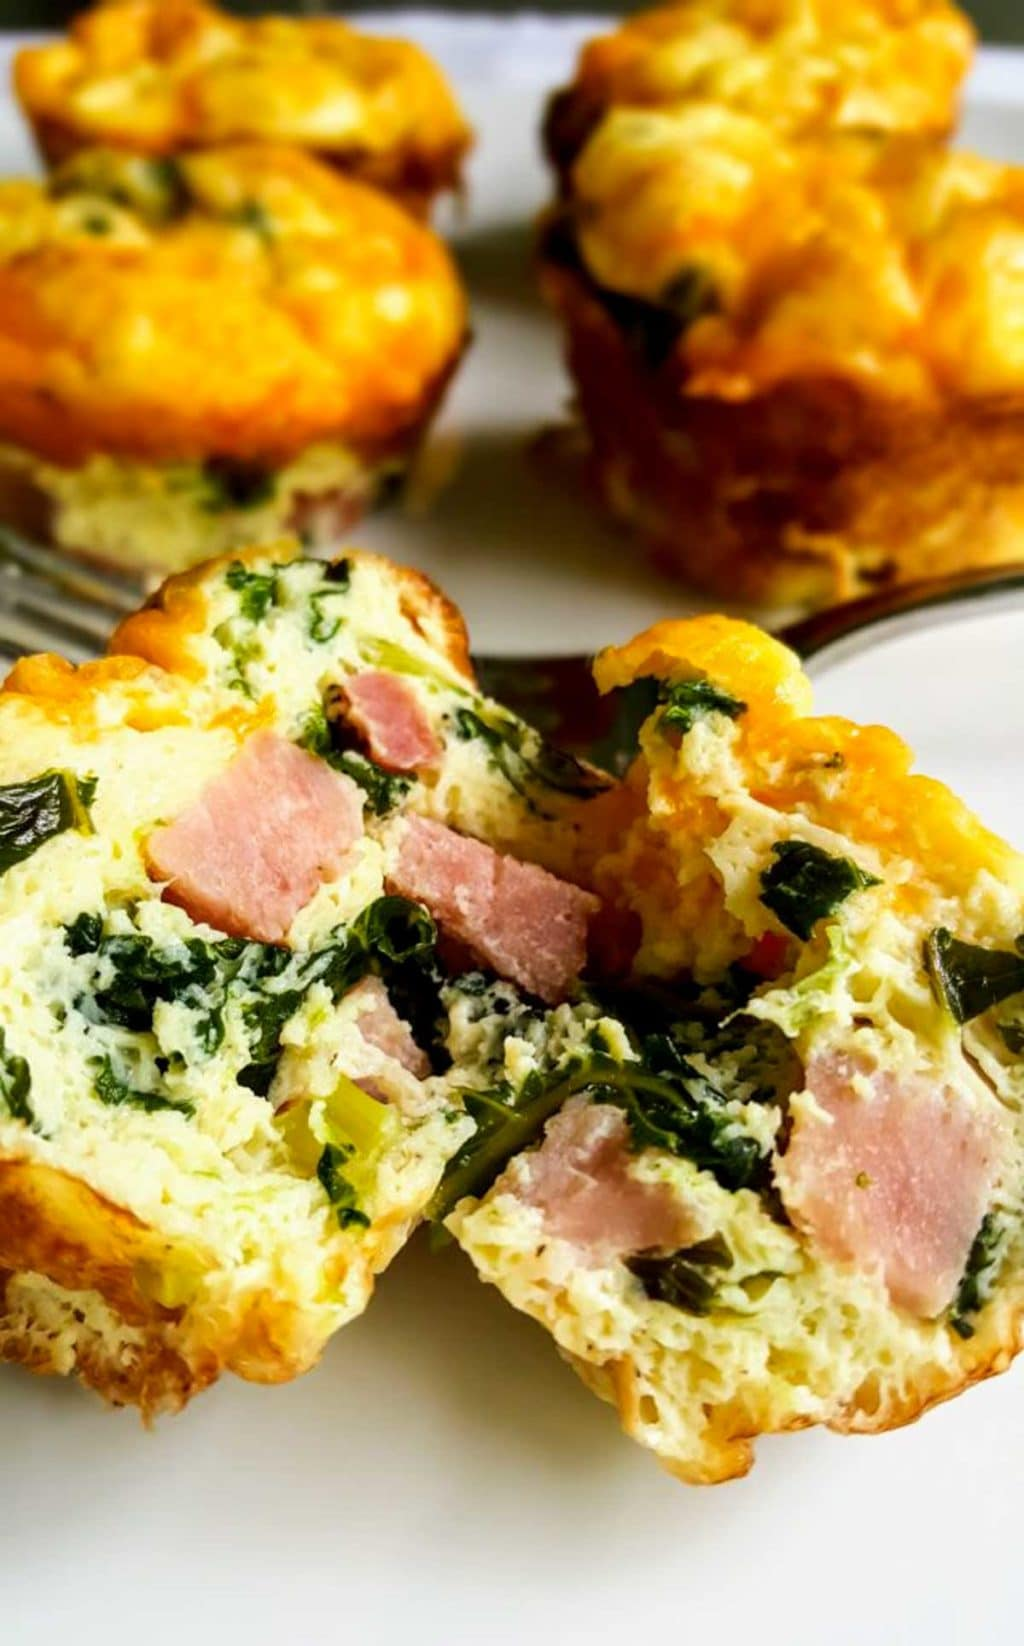 Ham and Kale Egg Cup split in half showing the ham and kale inside